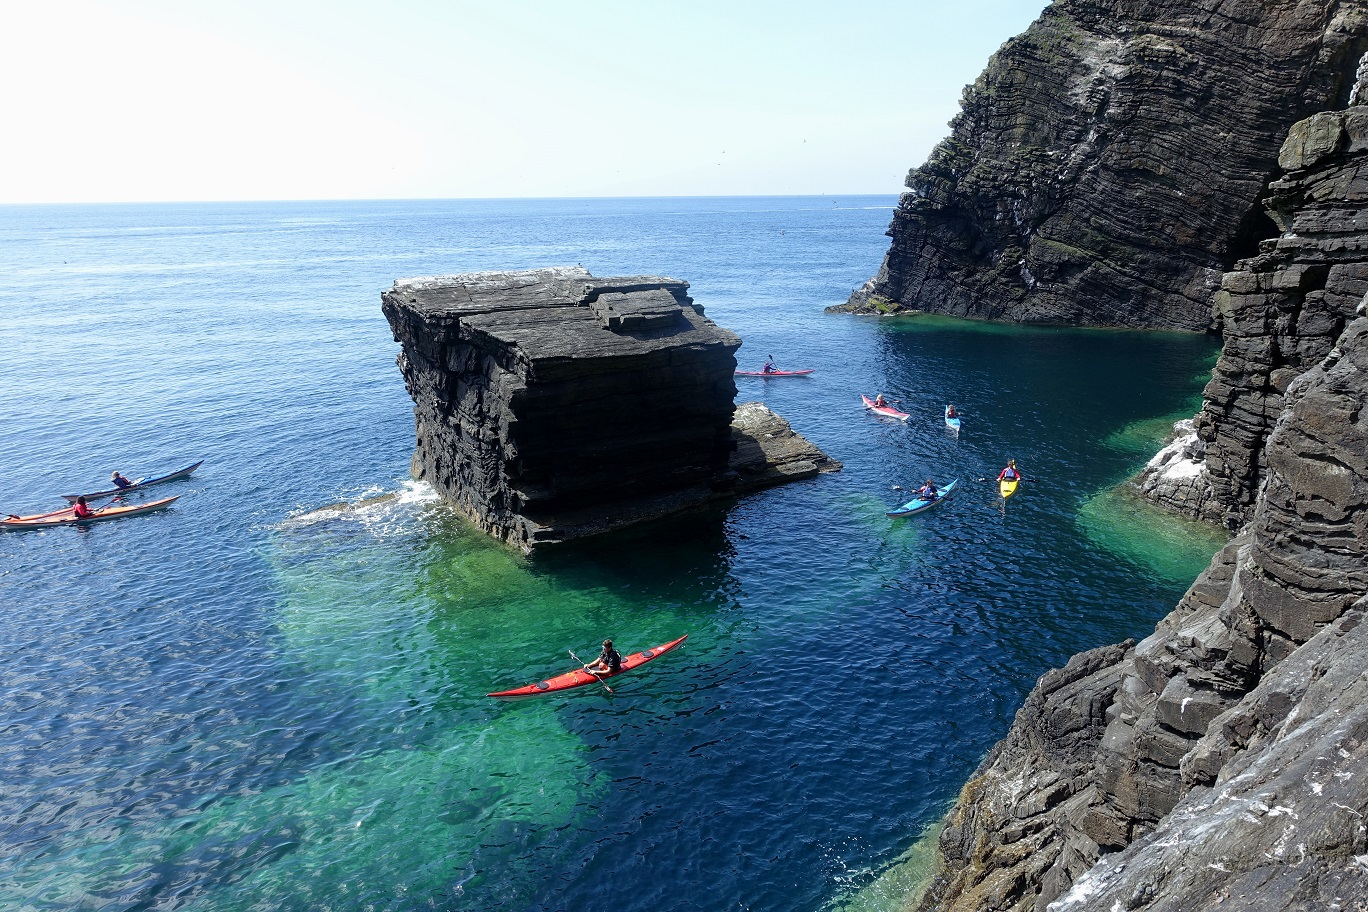 Sea Kayaking around the Anvil rock, Sugarloaf area, Isle of Man